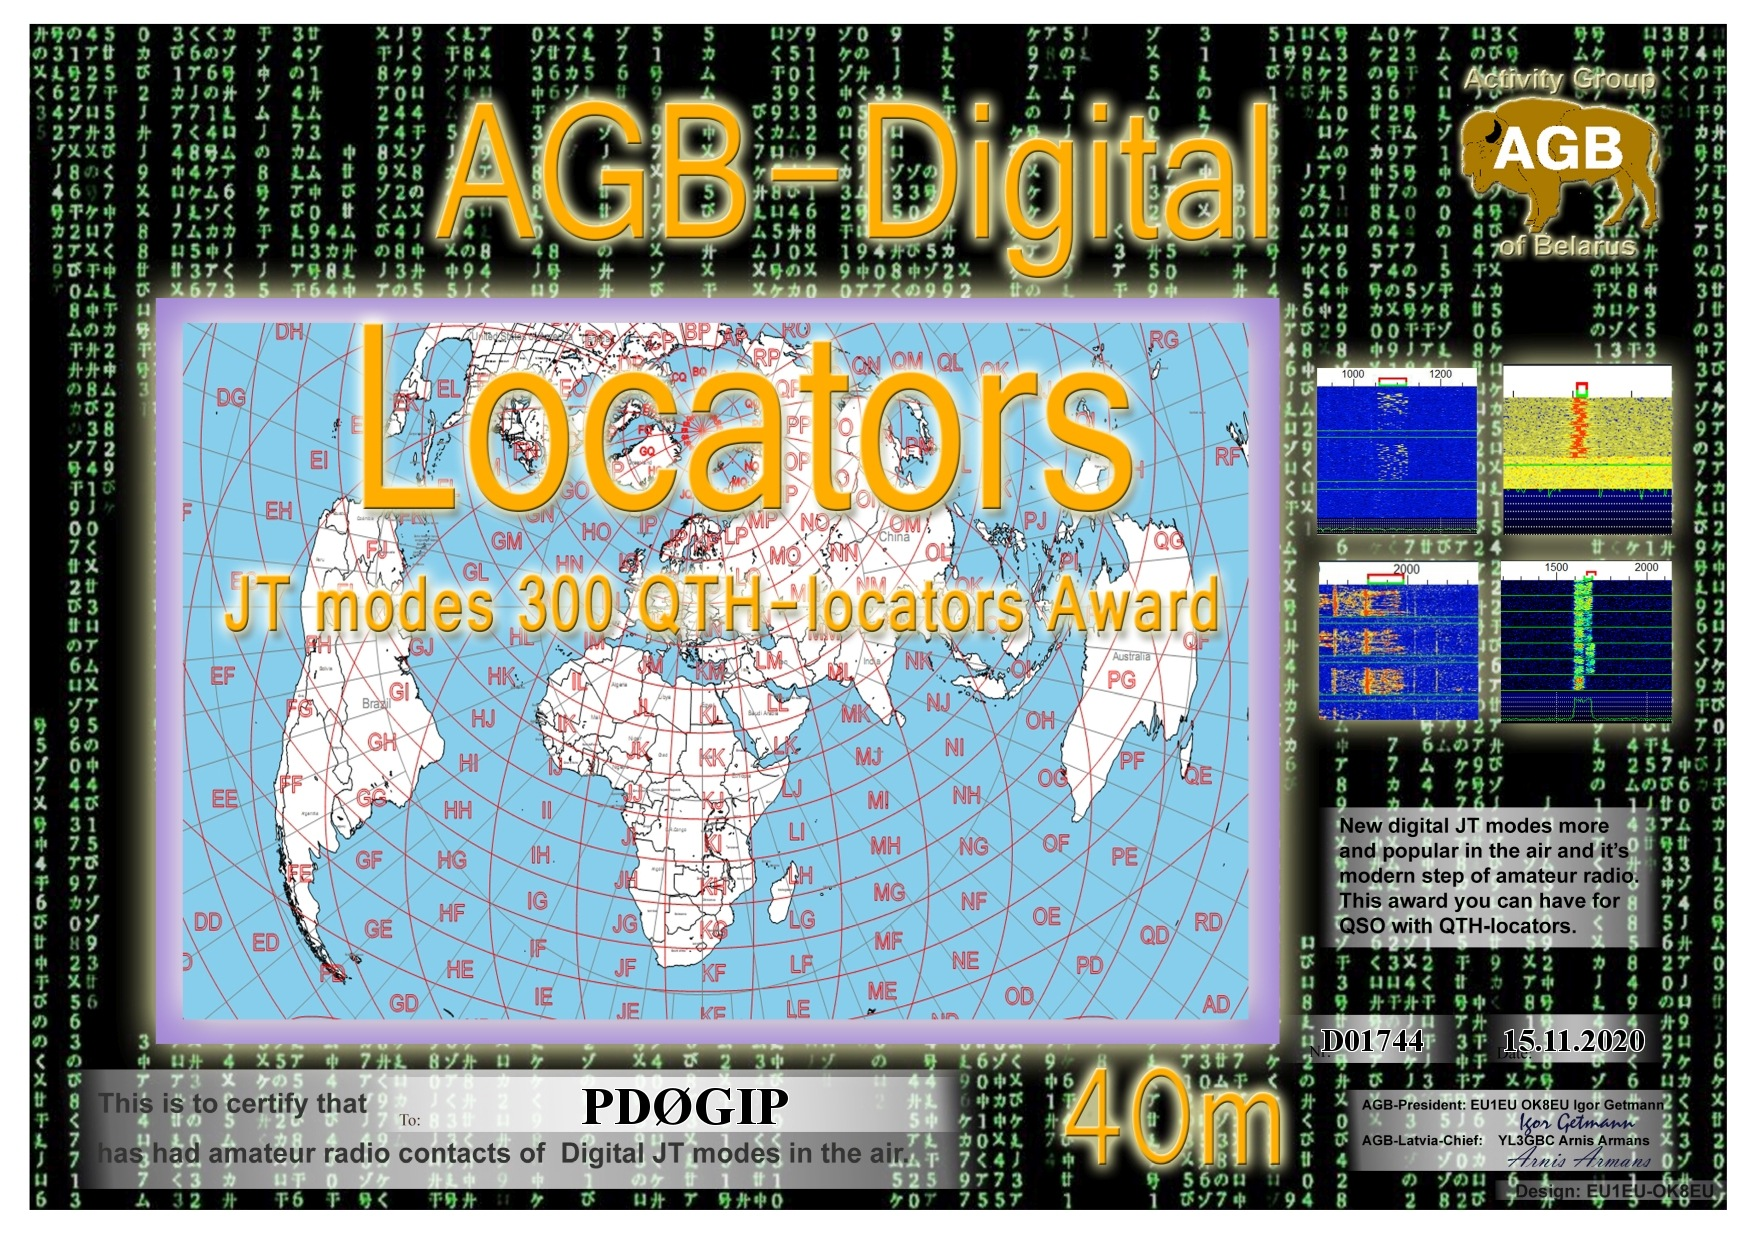 PD0GIP LOCATORS 40M 300 AGB